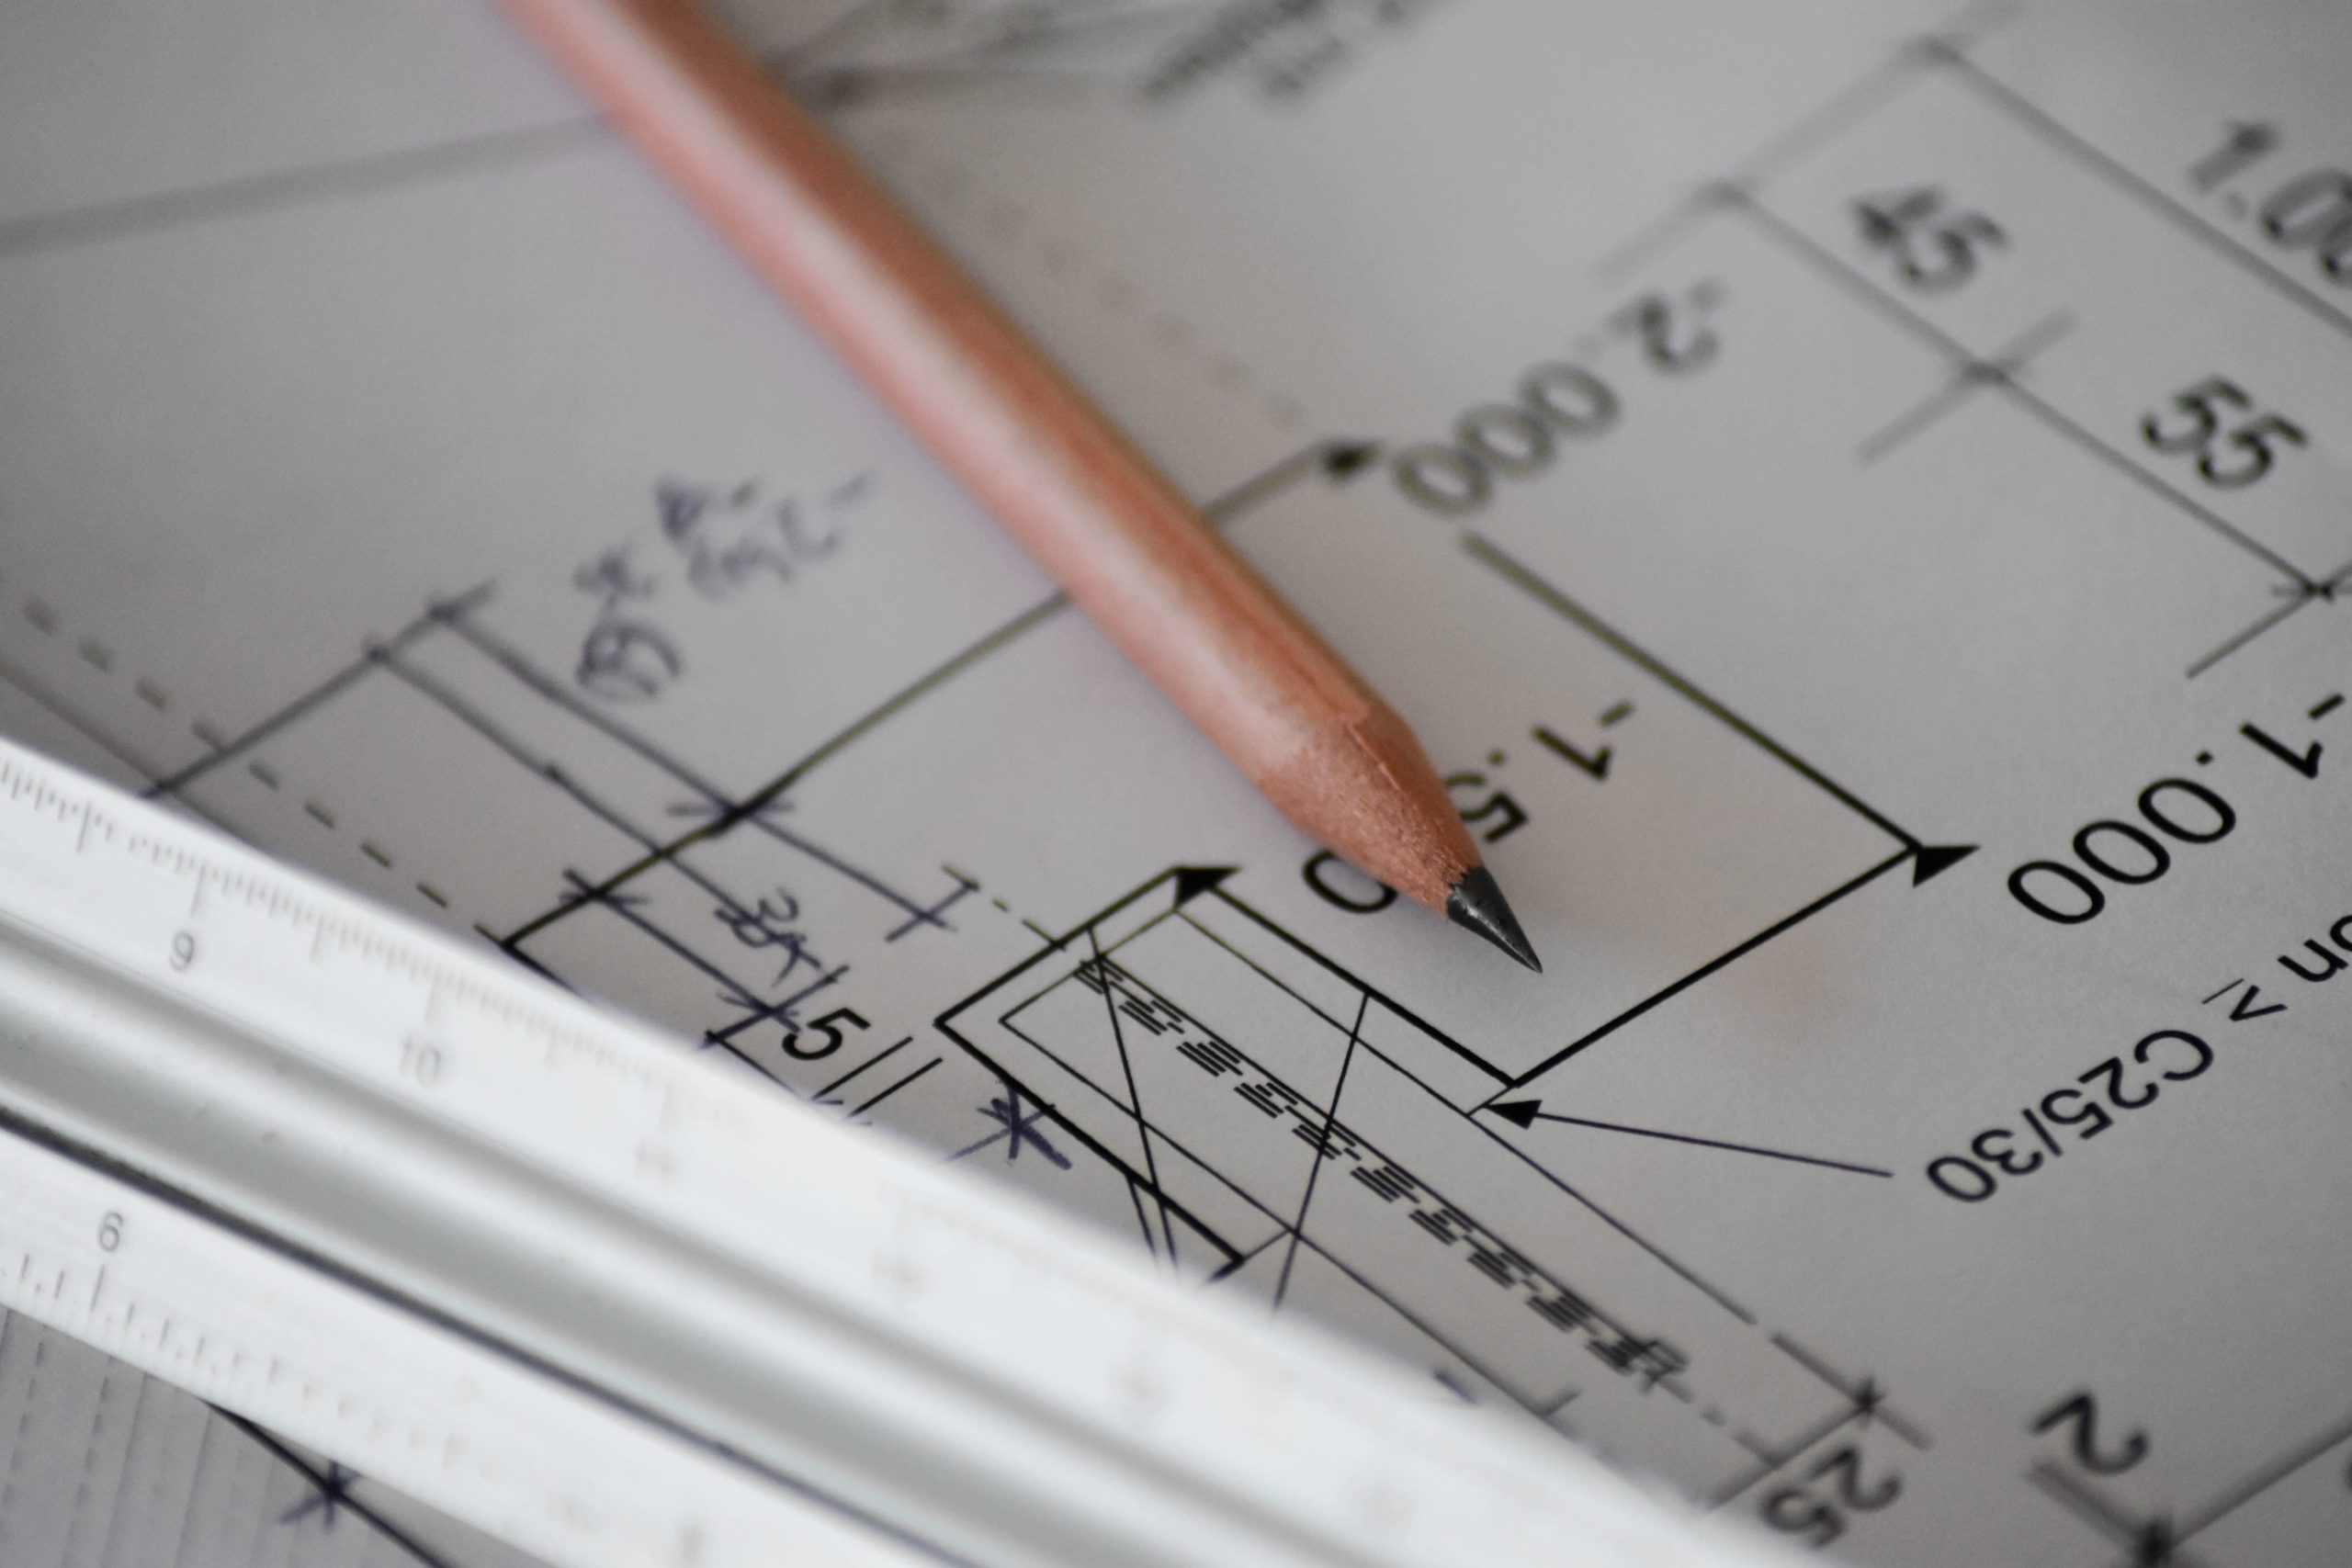 Pencil on blueprint with ruler (Photo by Sven Mieke on Unsplash)